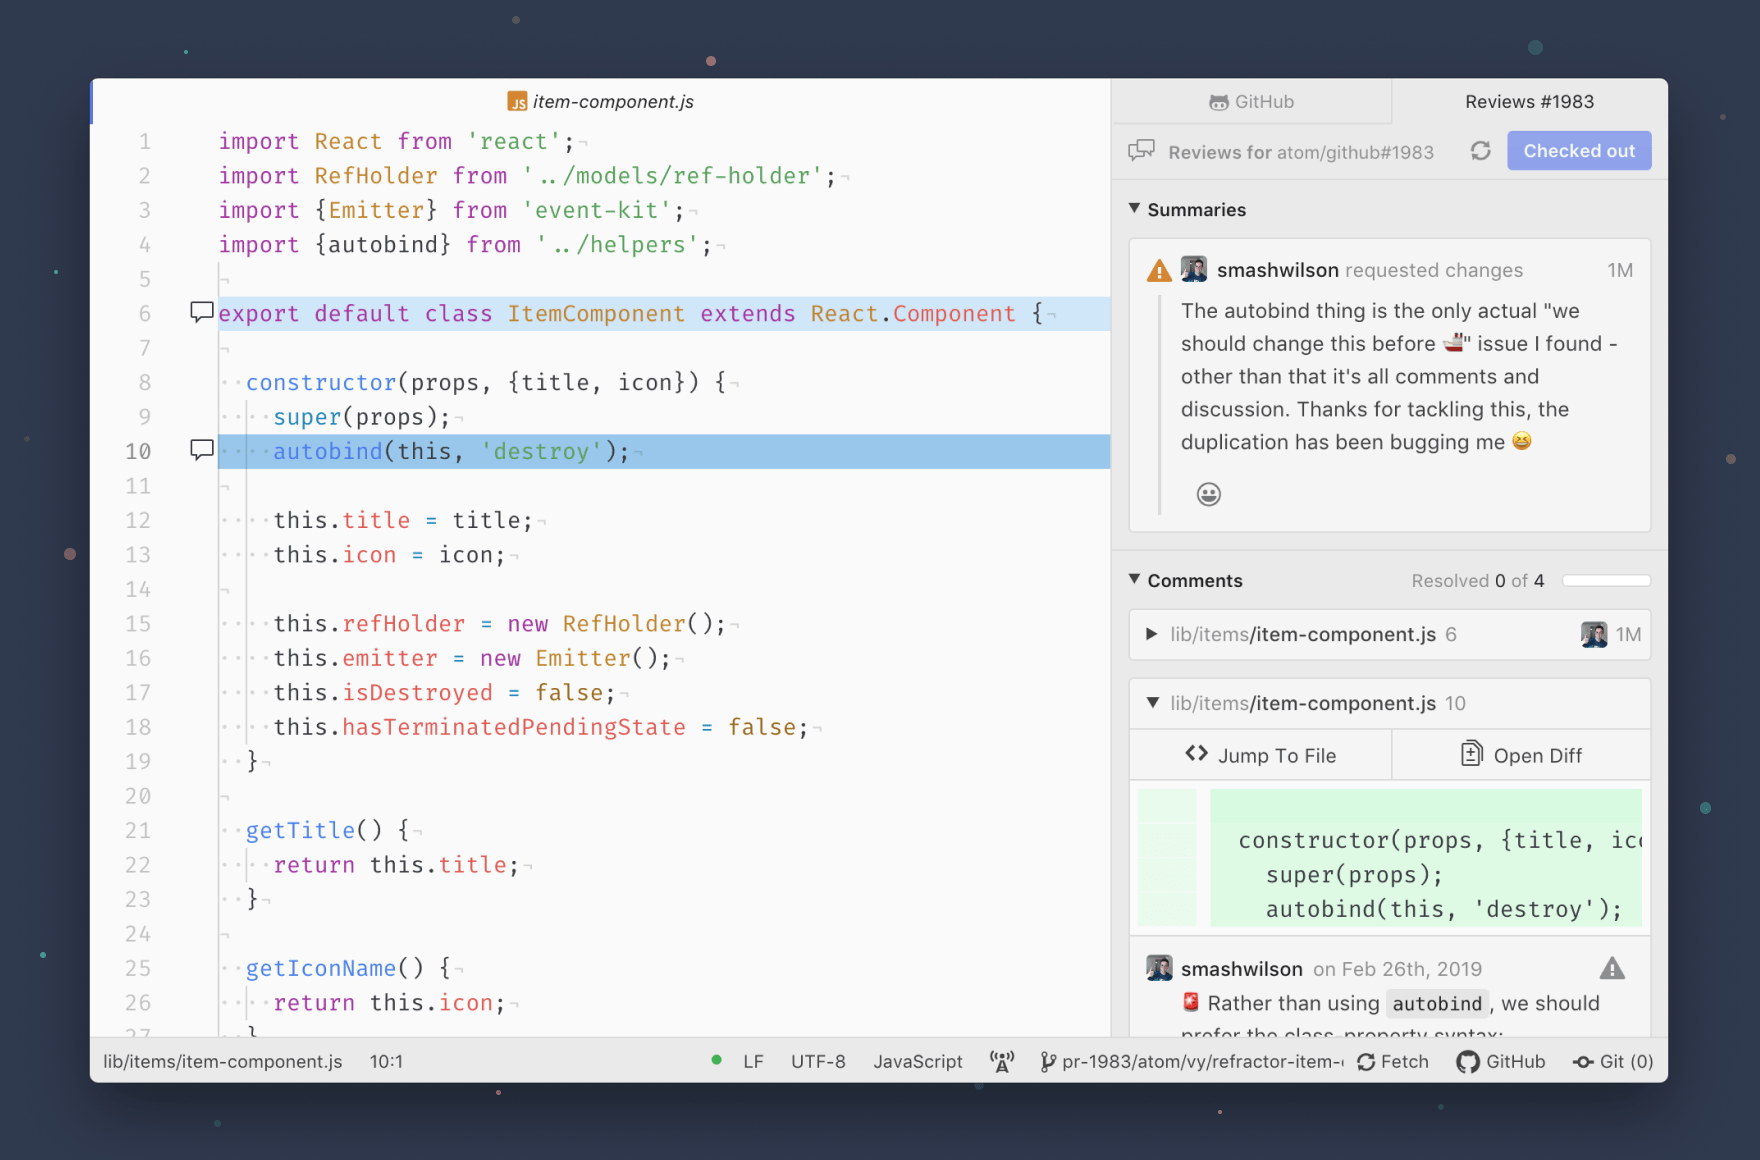 image of dock on the right side of Atom's text editor